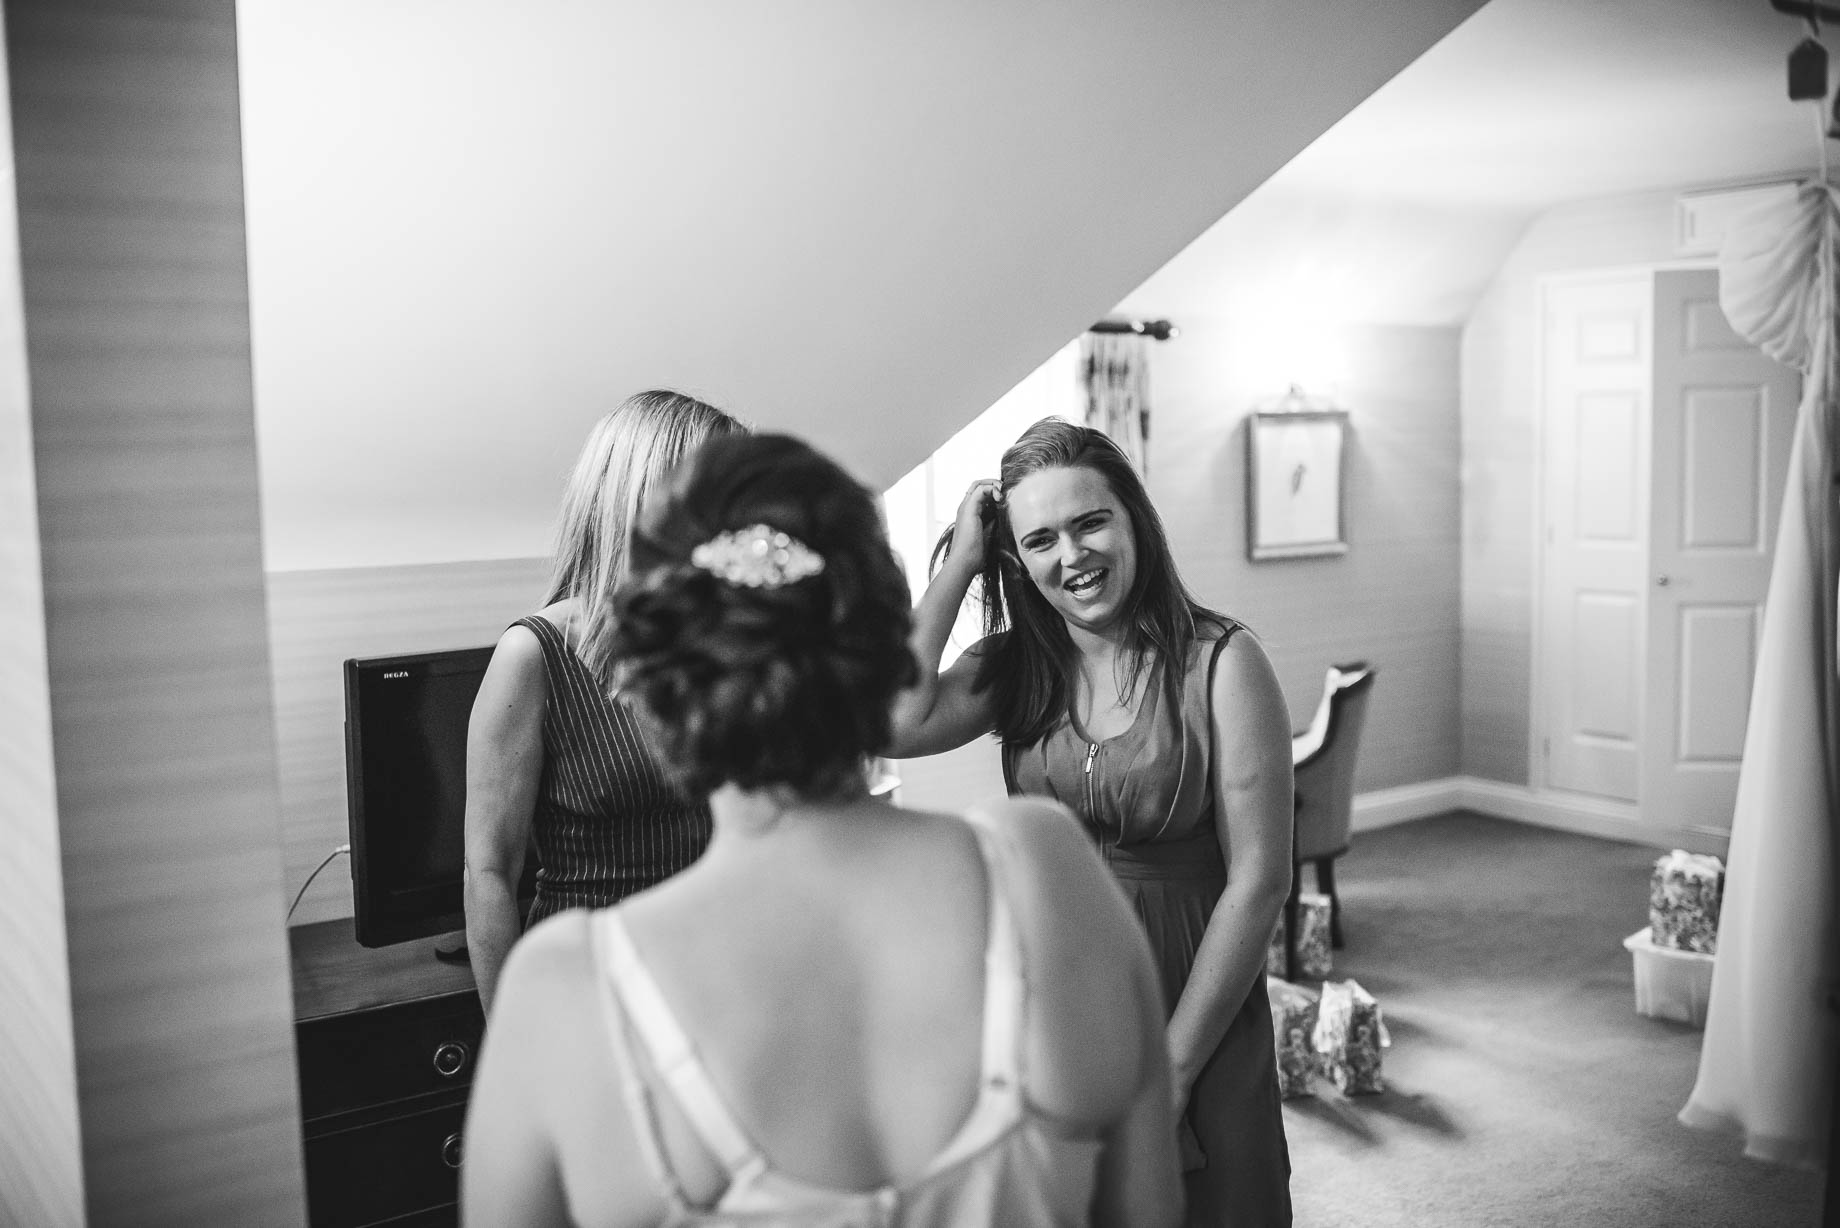 Luton Hoo wedding photography by Guy Collier Photography - Lauren and Gem (32 of 178)